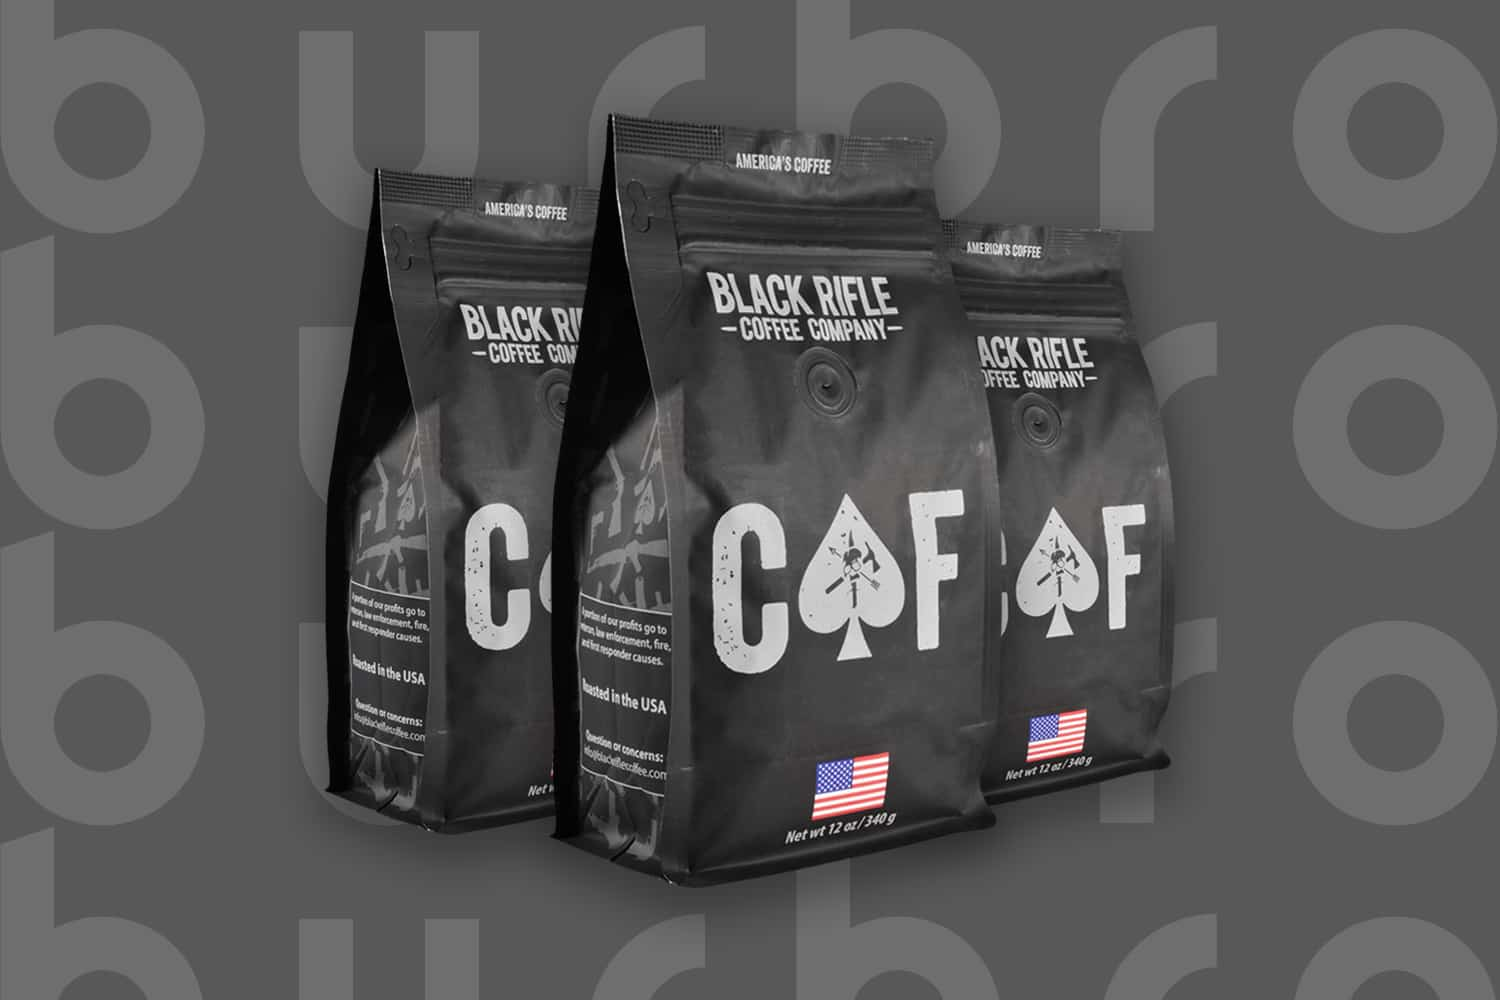 This is the cover photo for our Best Strong Coffee article. It features 3 black and grey bags of Black Rifle CAF 2x Caffeine coffee overlaid on a dark background with embossed Burbro logo.